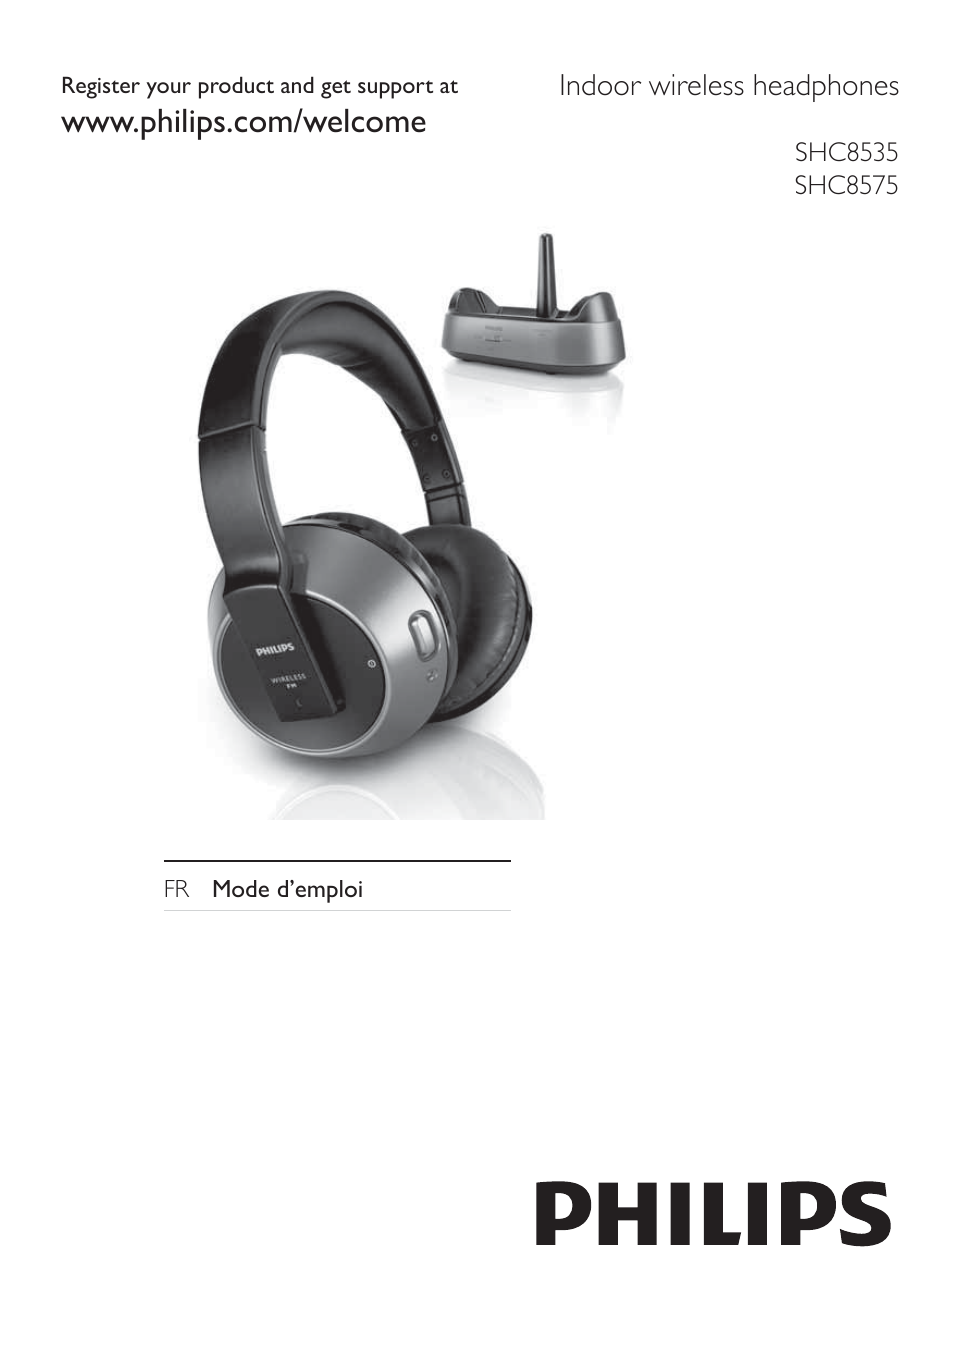 Philips Casque Hi Fi Sans Fil Manuel Dutilisation Pages 7